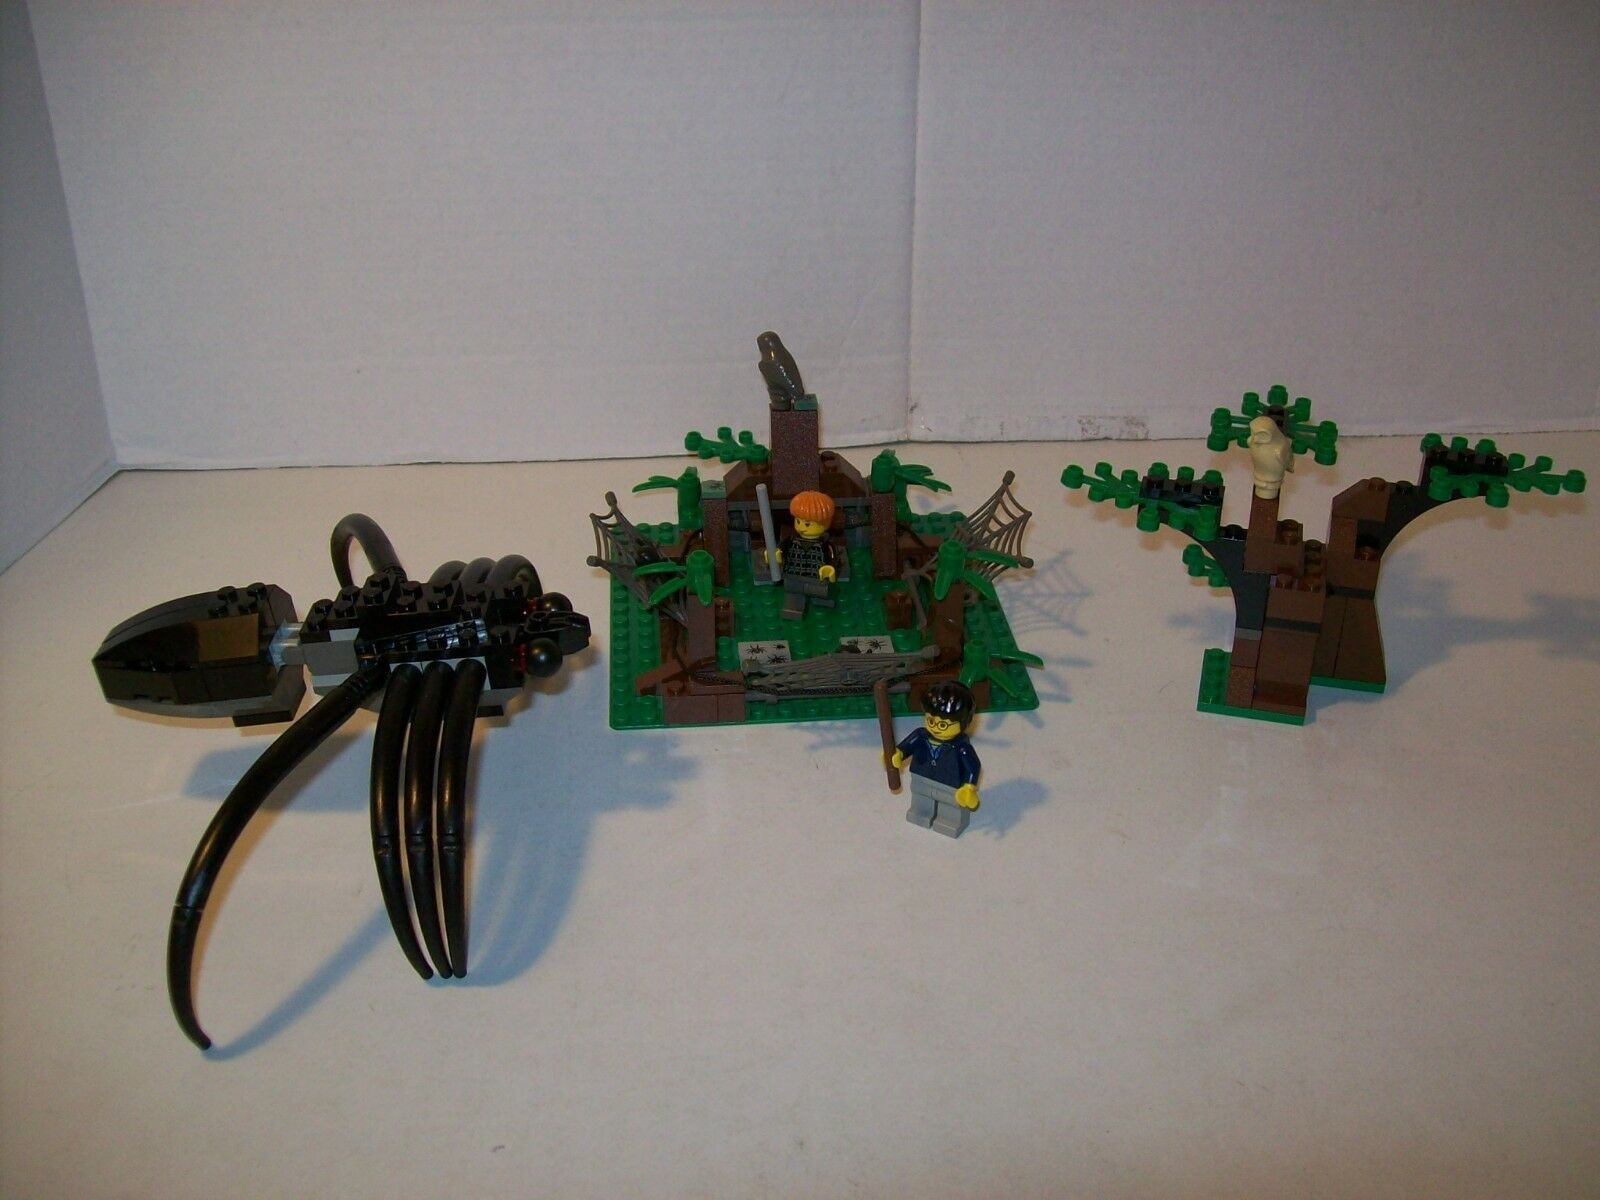 Lego Lego Lego 4727 Harry Potter ARAGOG IN THE DARK FOREST Complete w Box & Instructions 3f795b